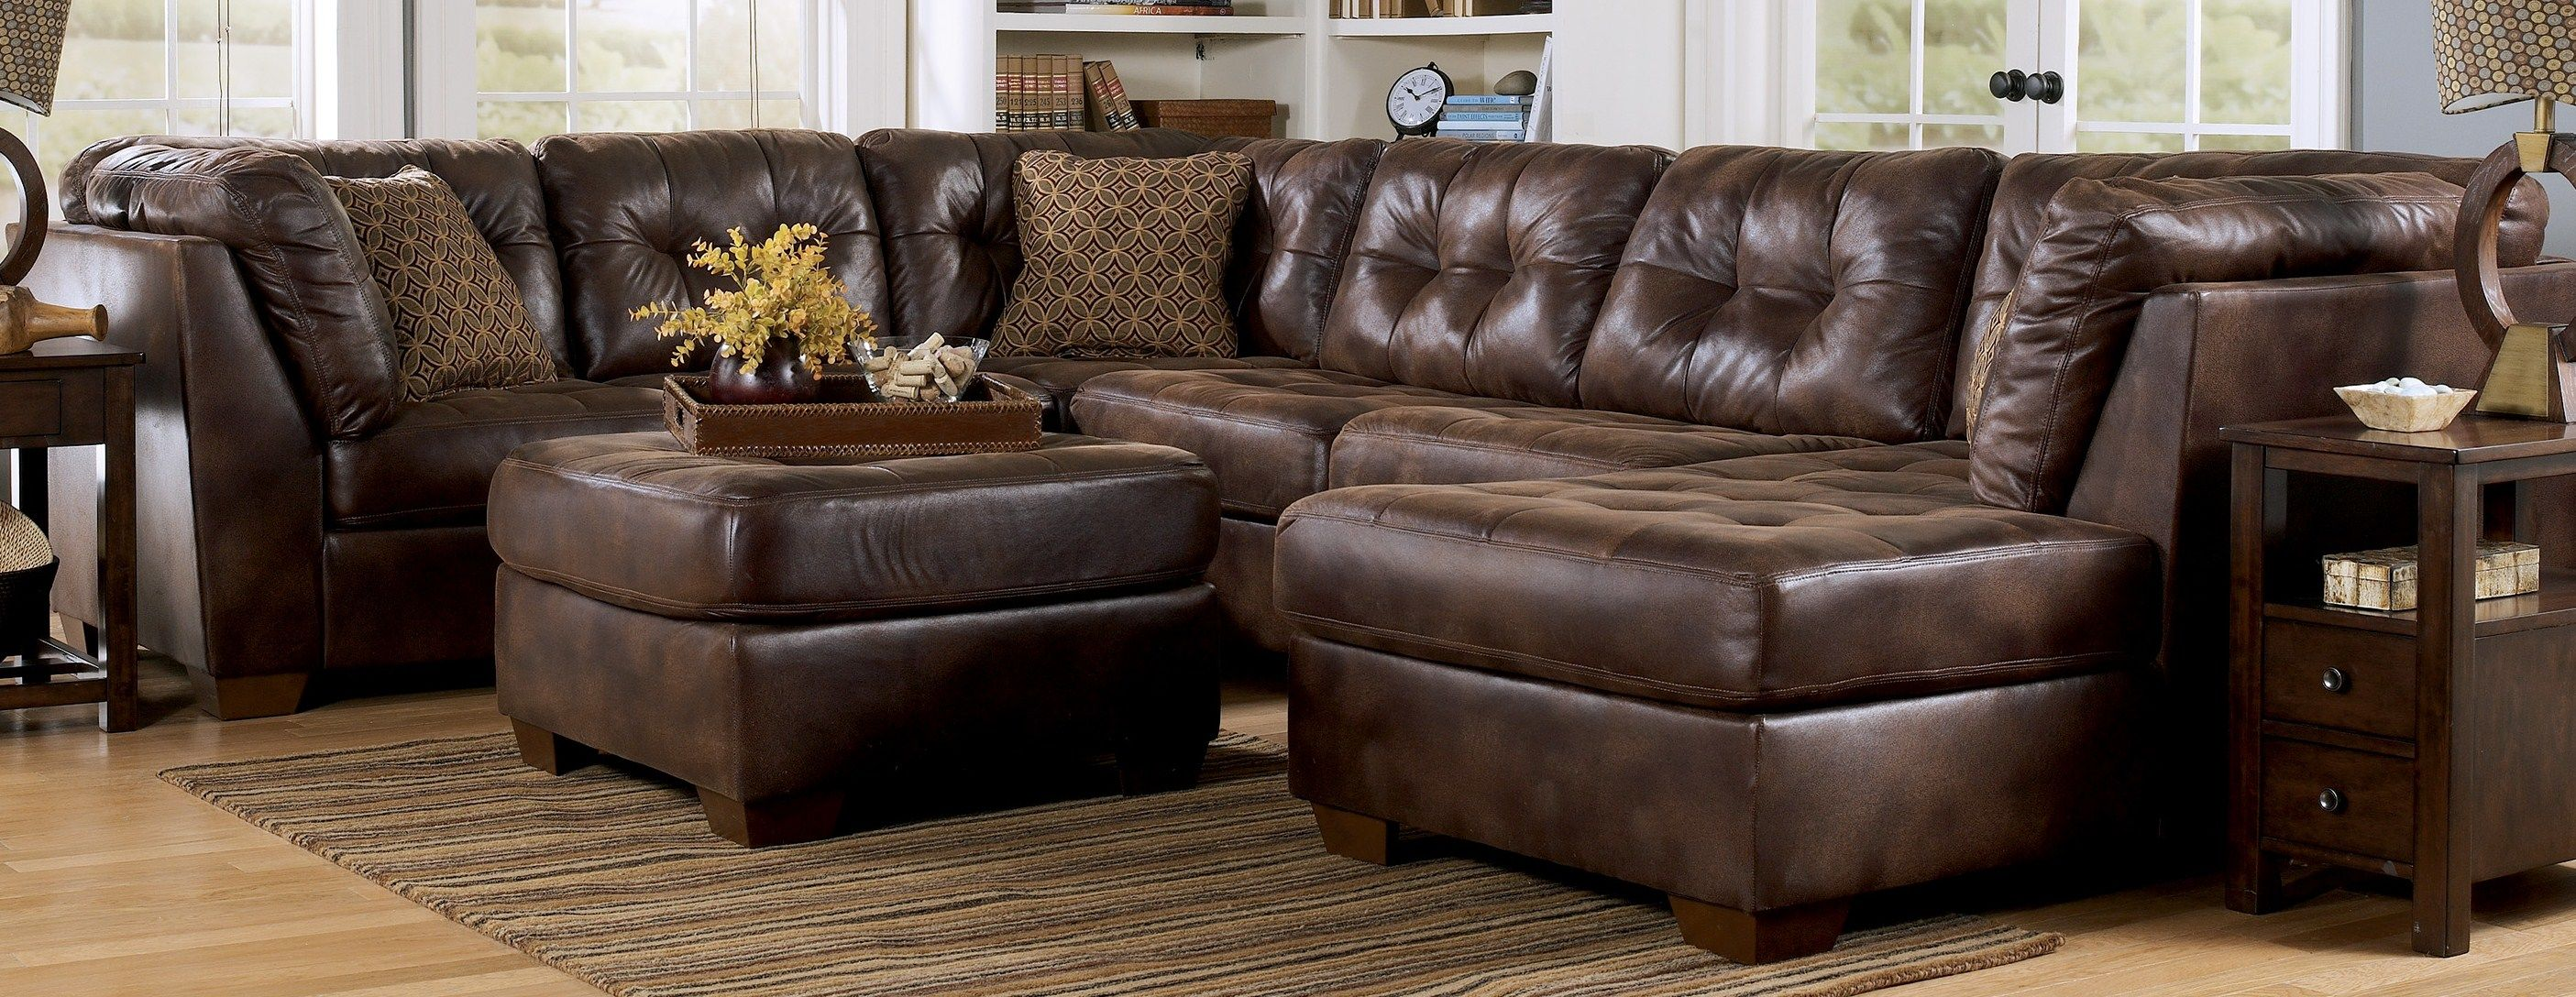 Terrific Huge Sectional Sofa Inspiration Modern Sofa